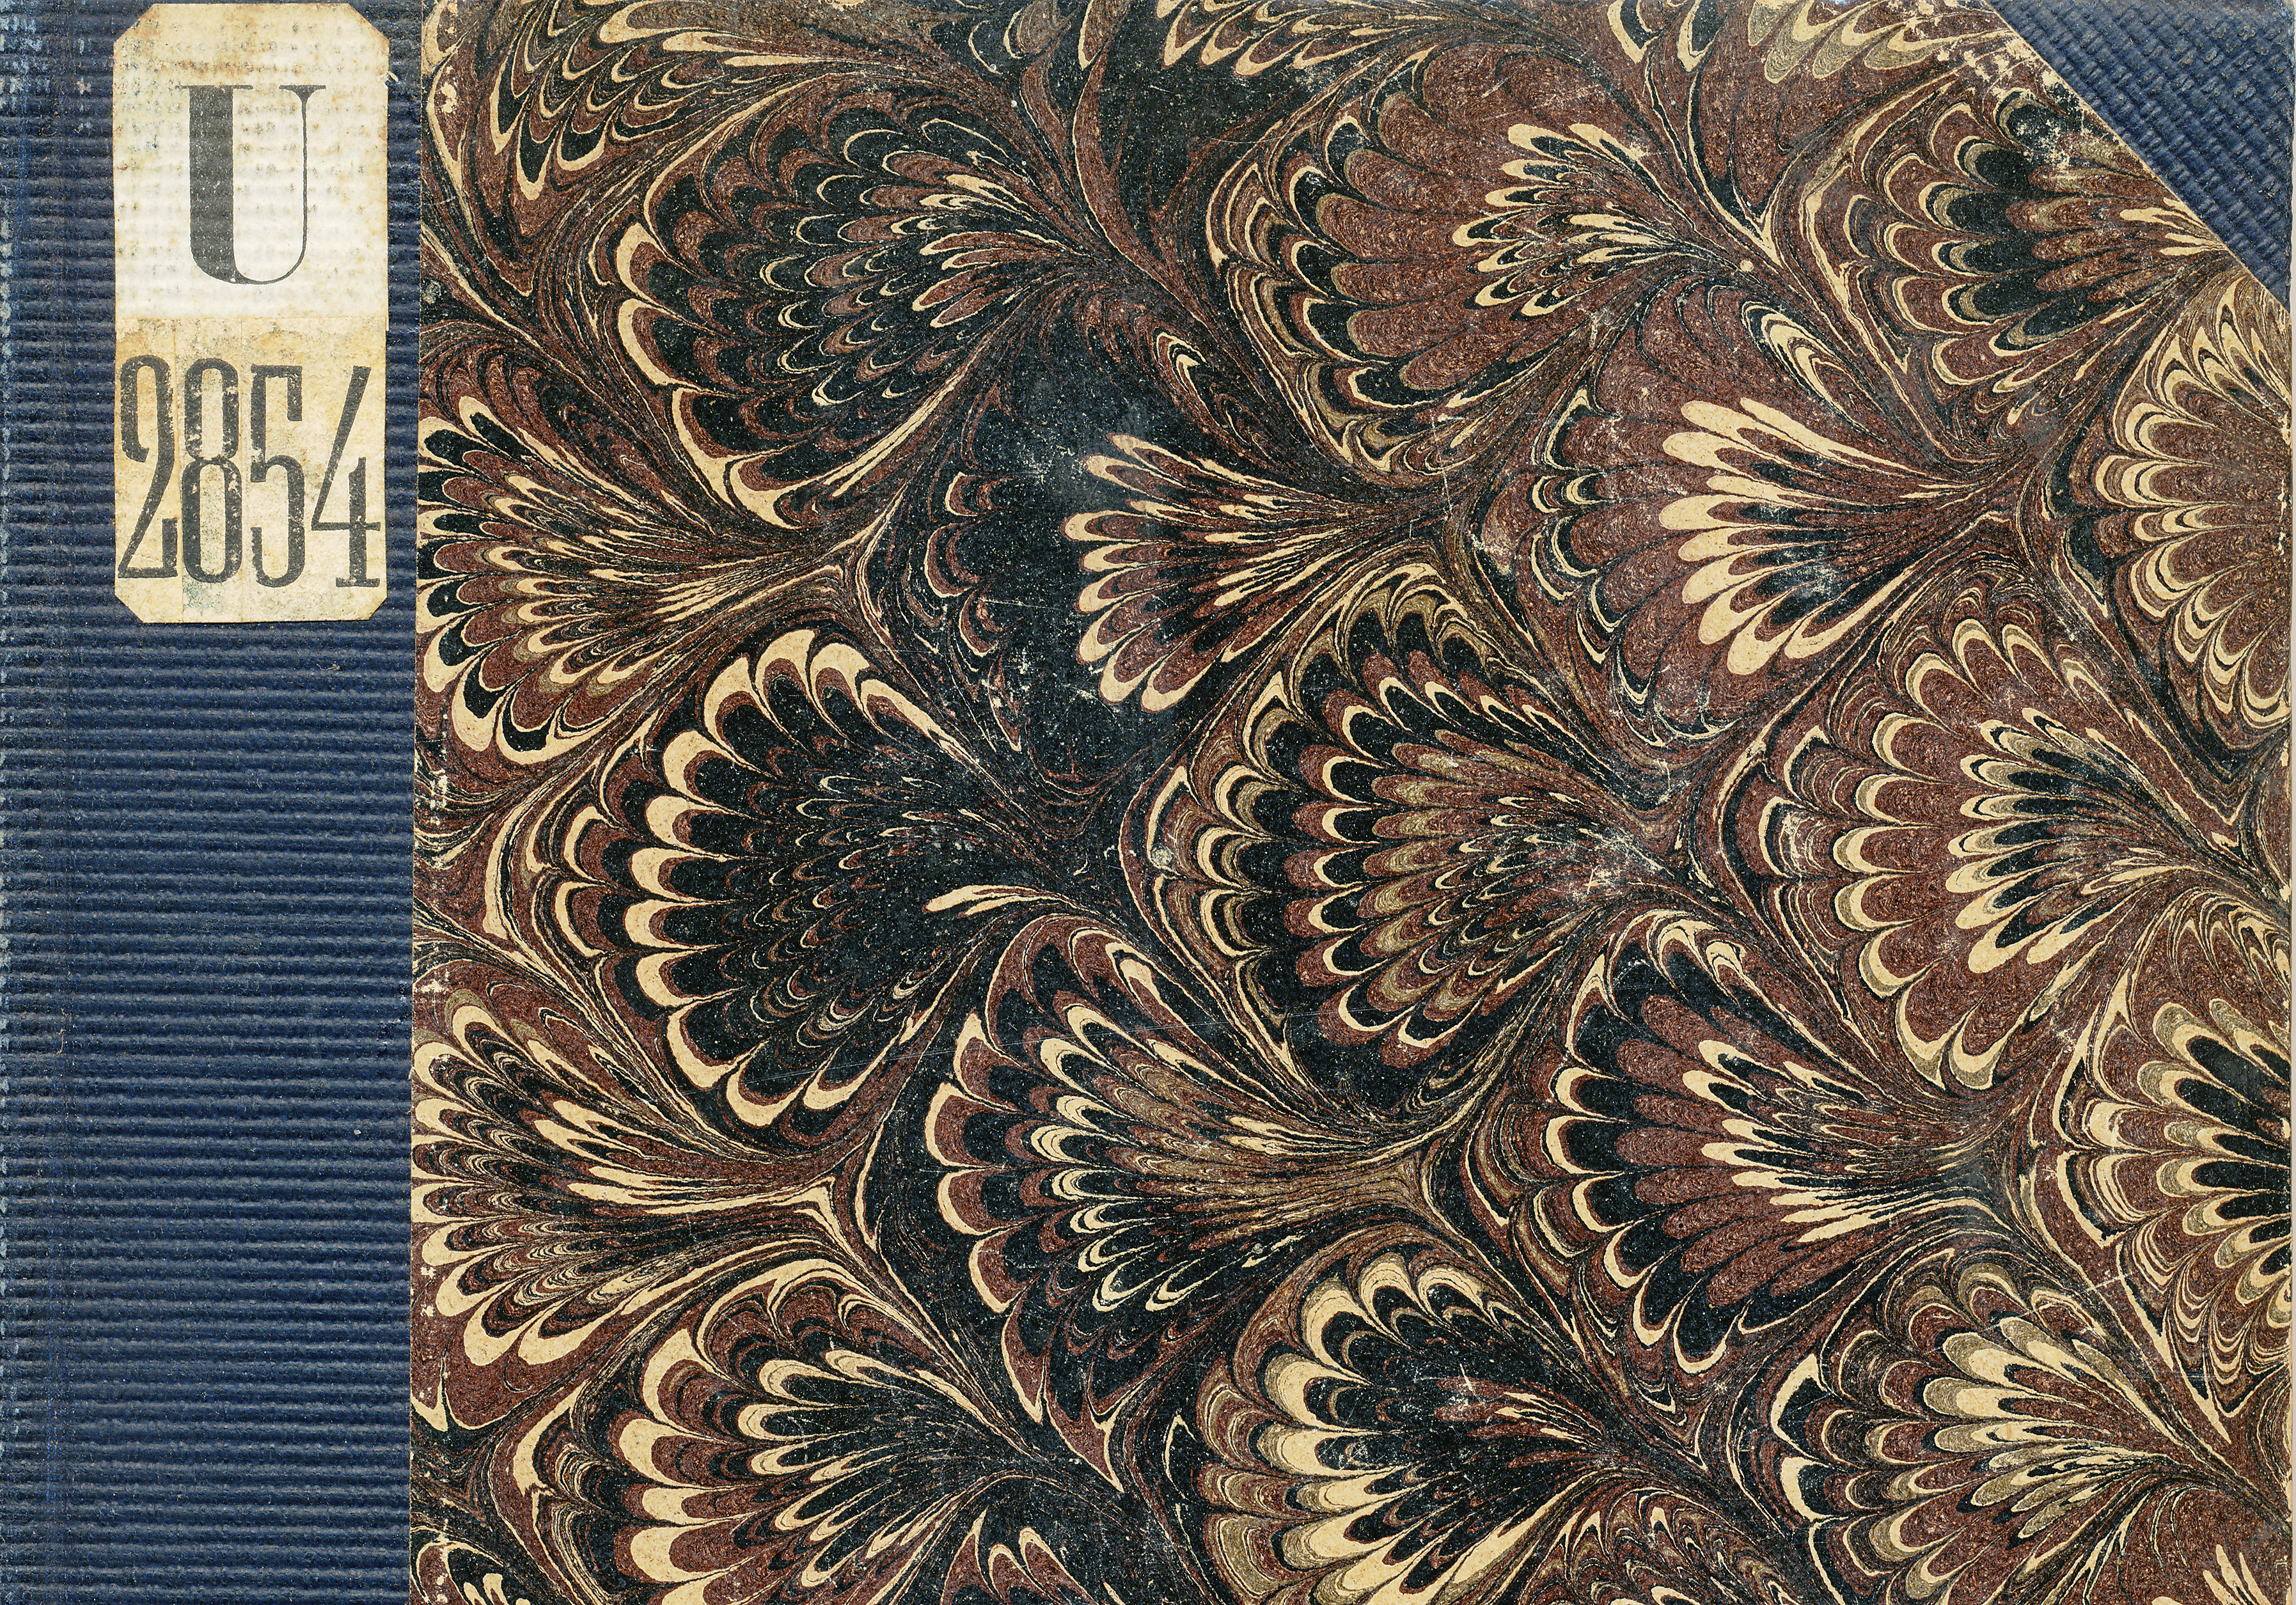 Book Cover Design Texture : Vintage book cover textures for photoshop free